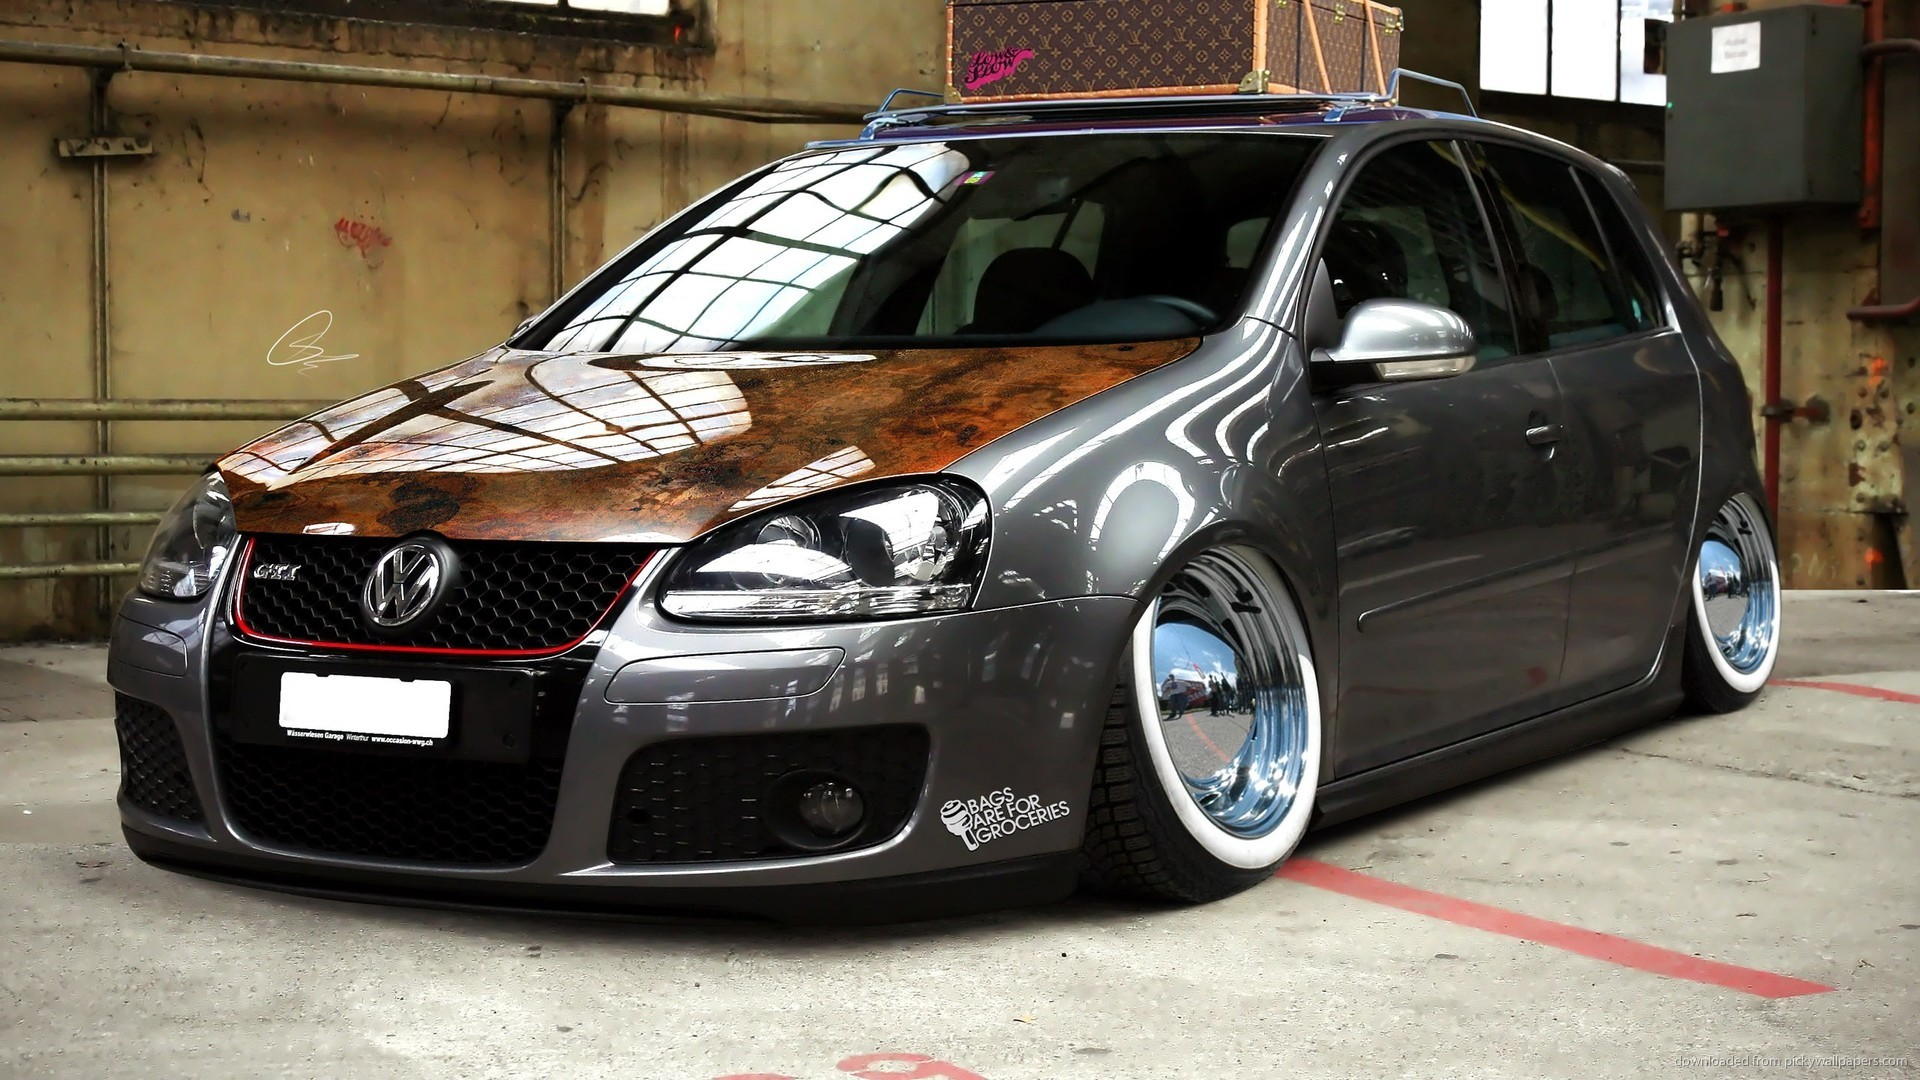 Grey Volkswagen Golf Stance picture